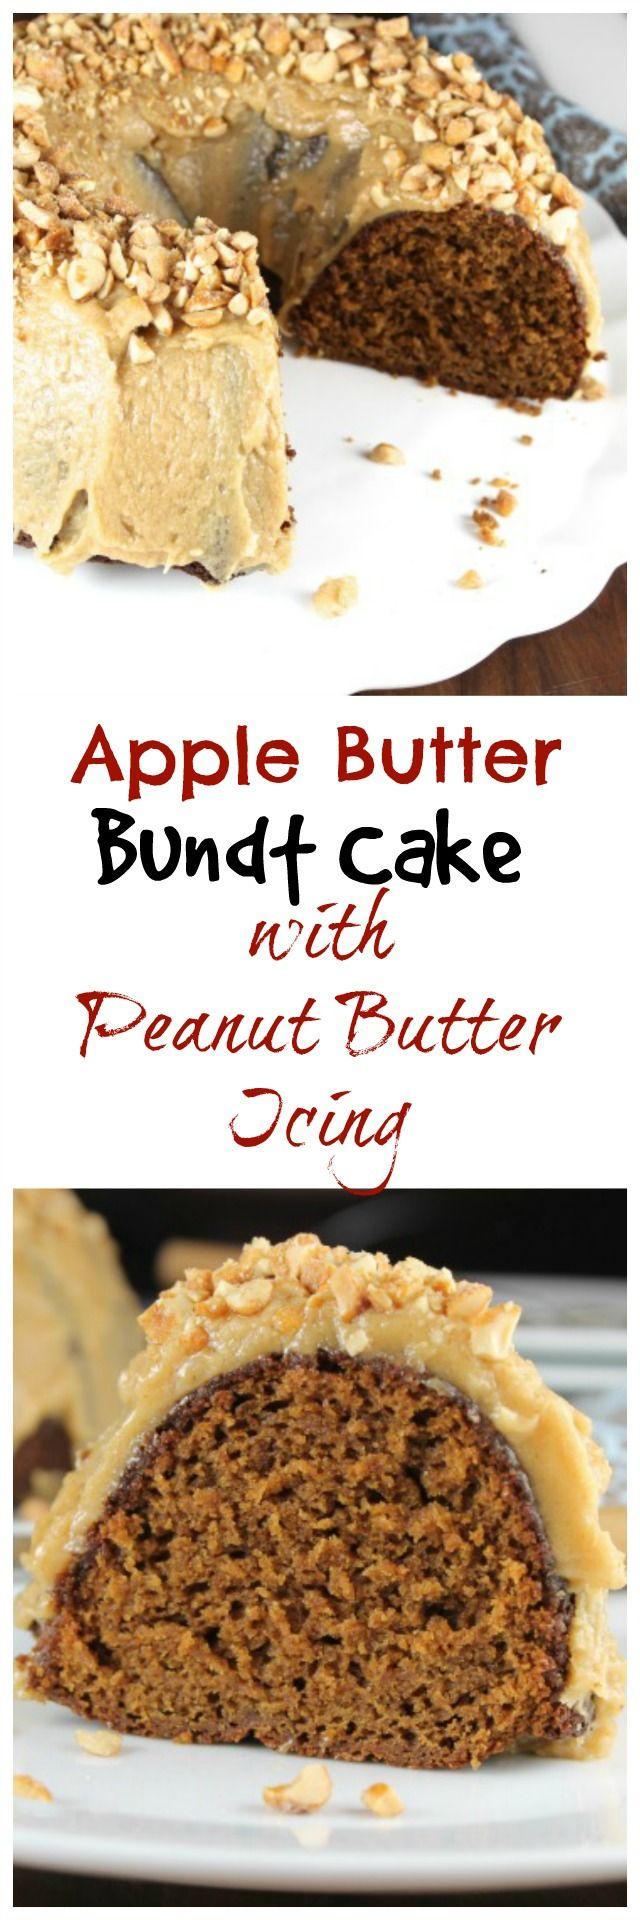 Apple Butter Bundt Cake with Peanut Butter Icing Recipe from MissintheKitchen.com